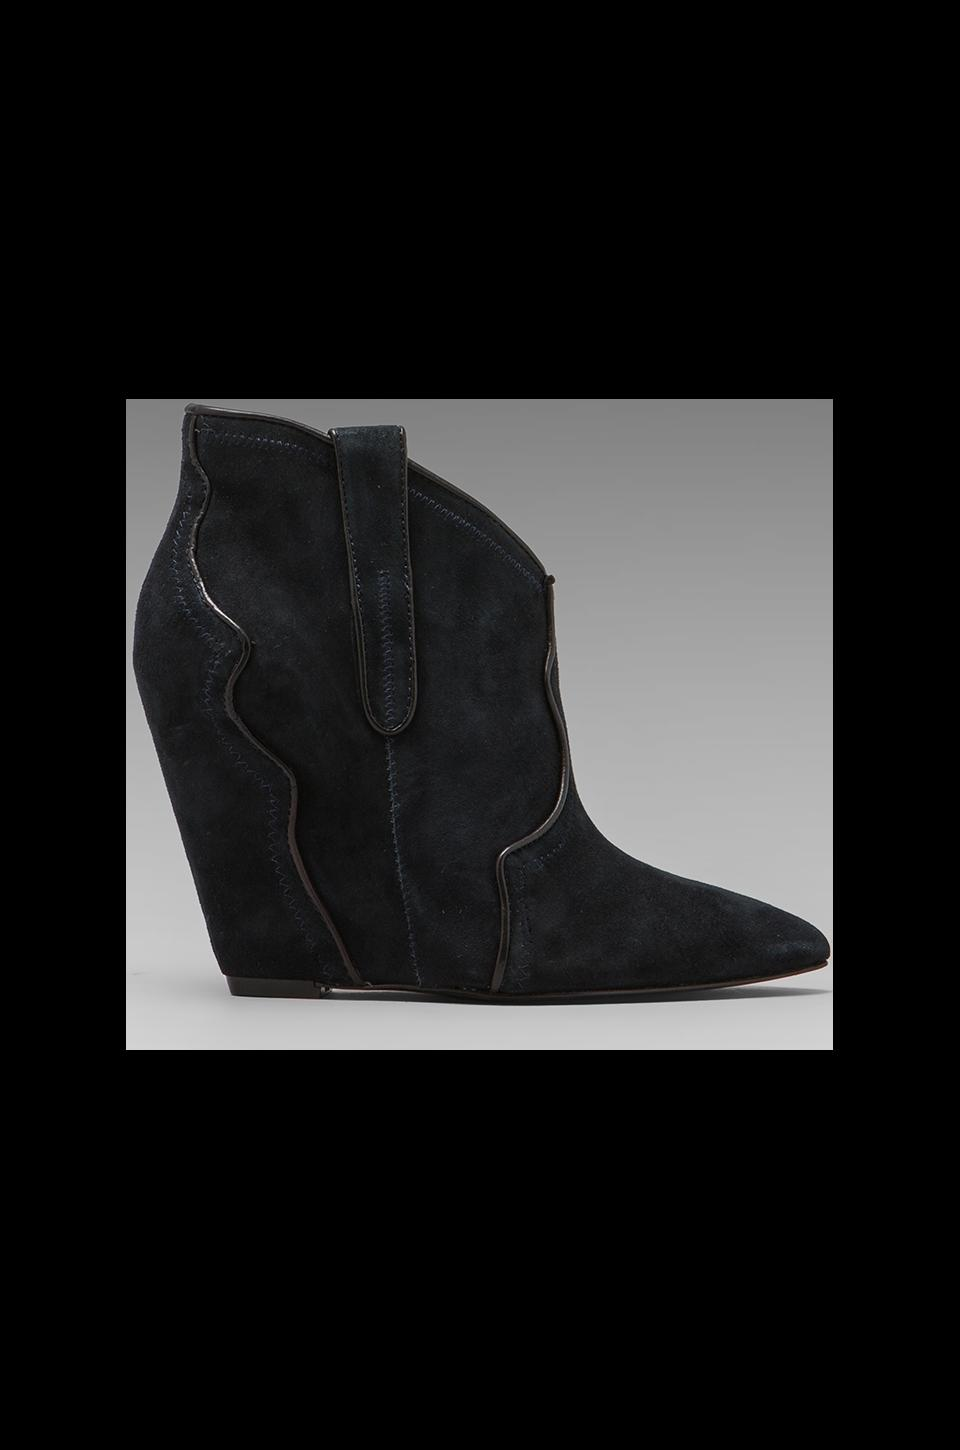 Ash Janet Bootie in Midnight